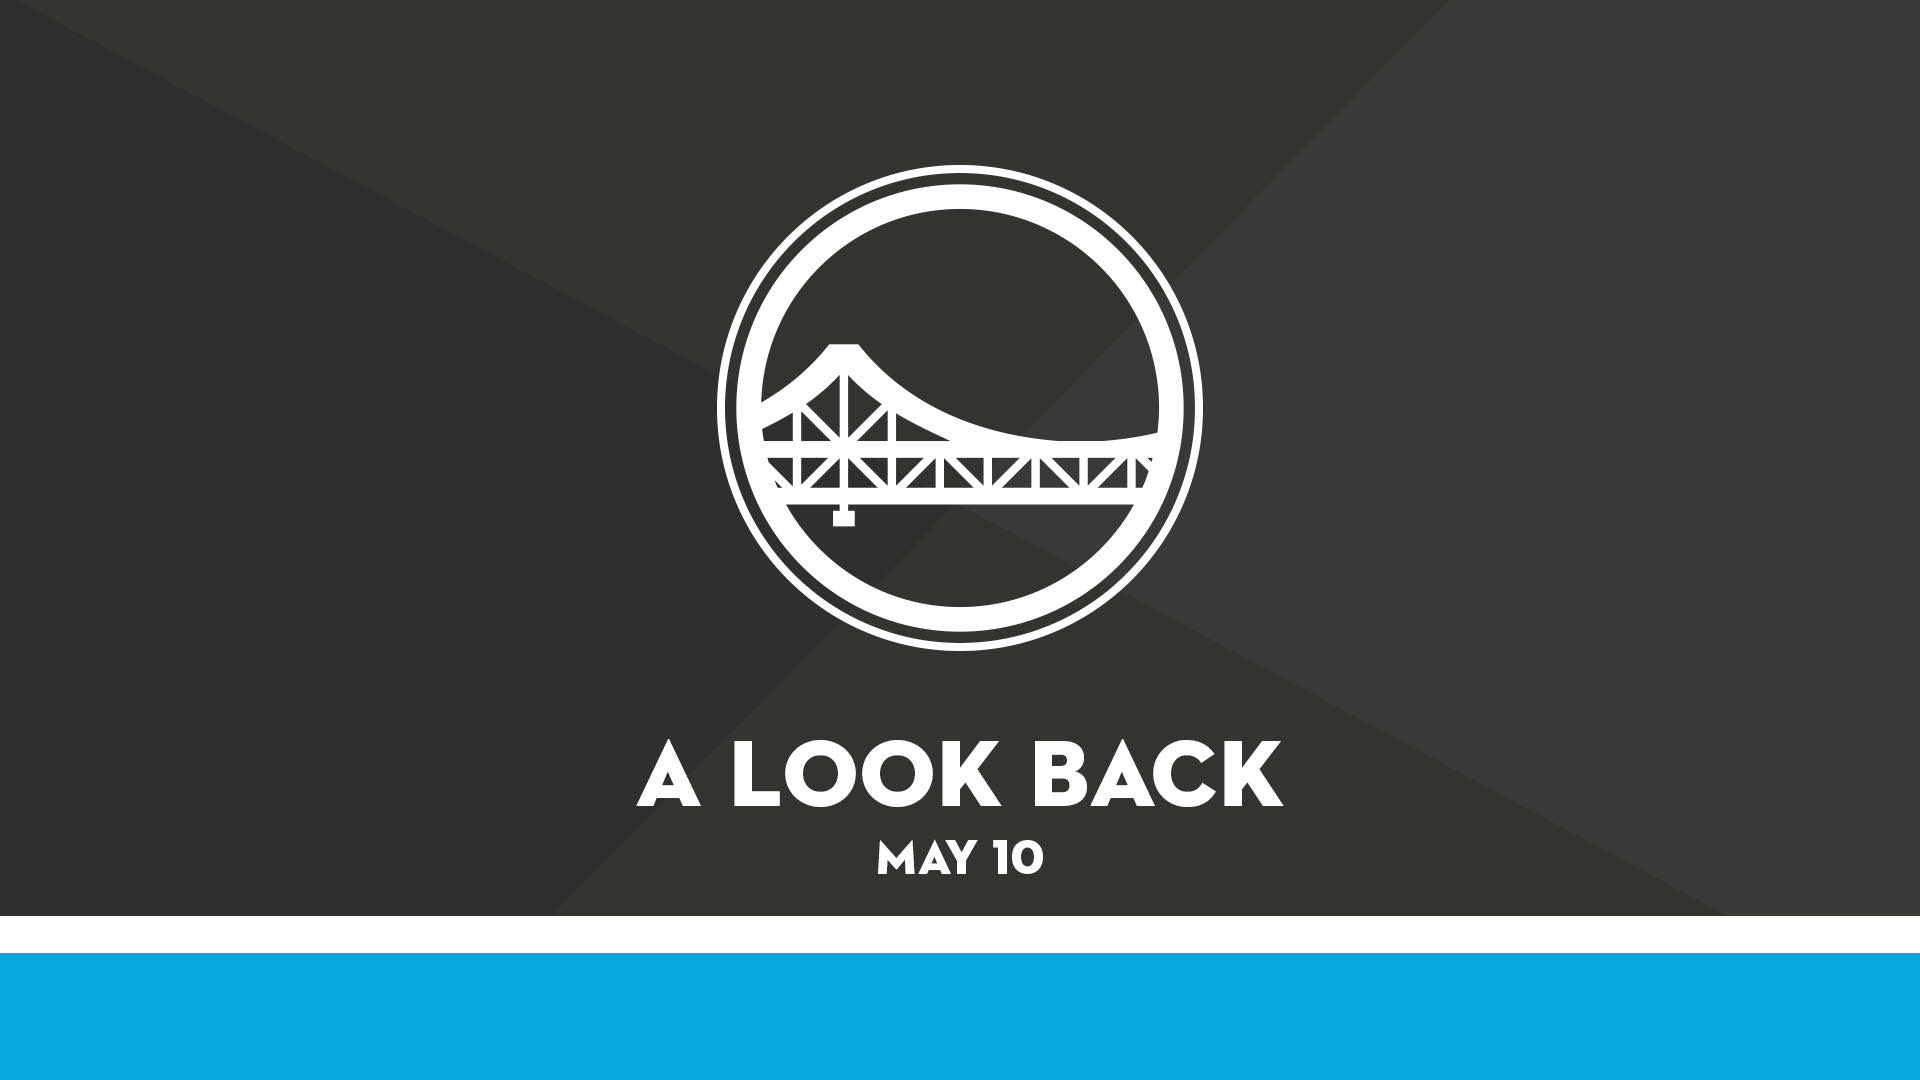 A Look Back